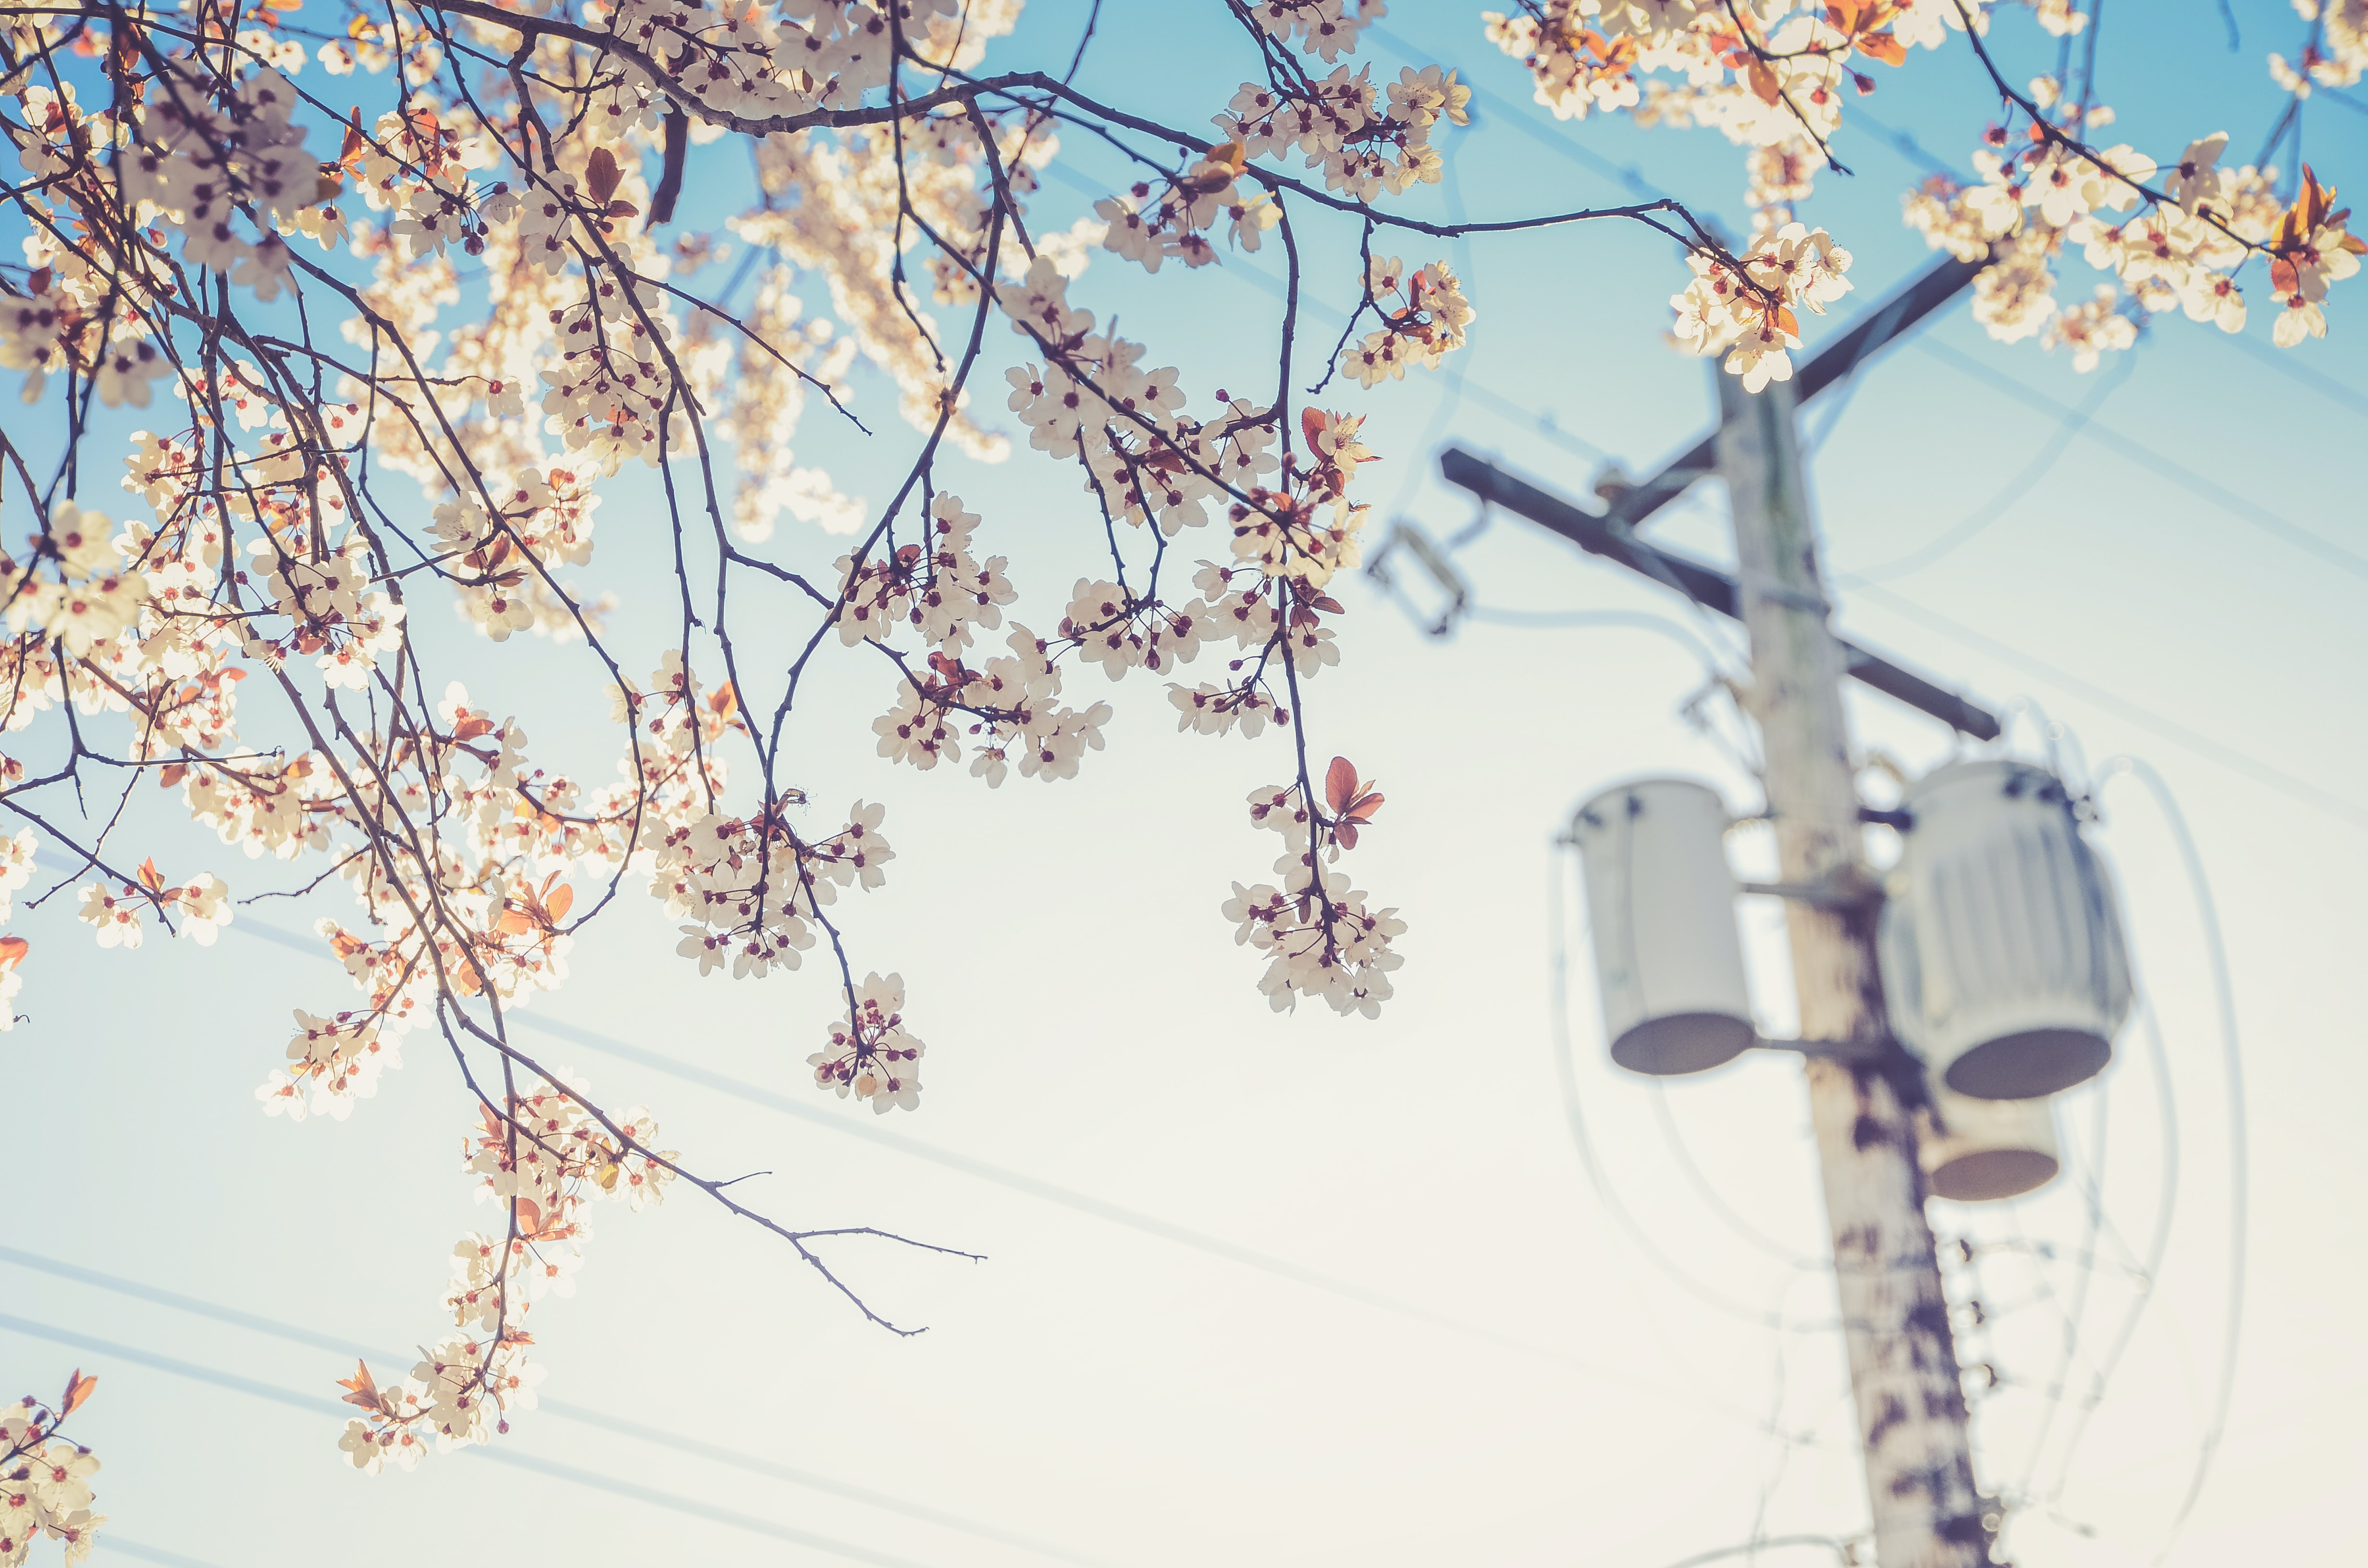 Urban cherry blossom tree with clear blue sky and telephone line, Vancouver